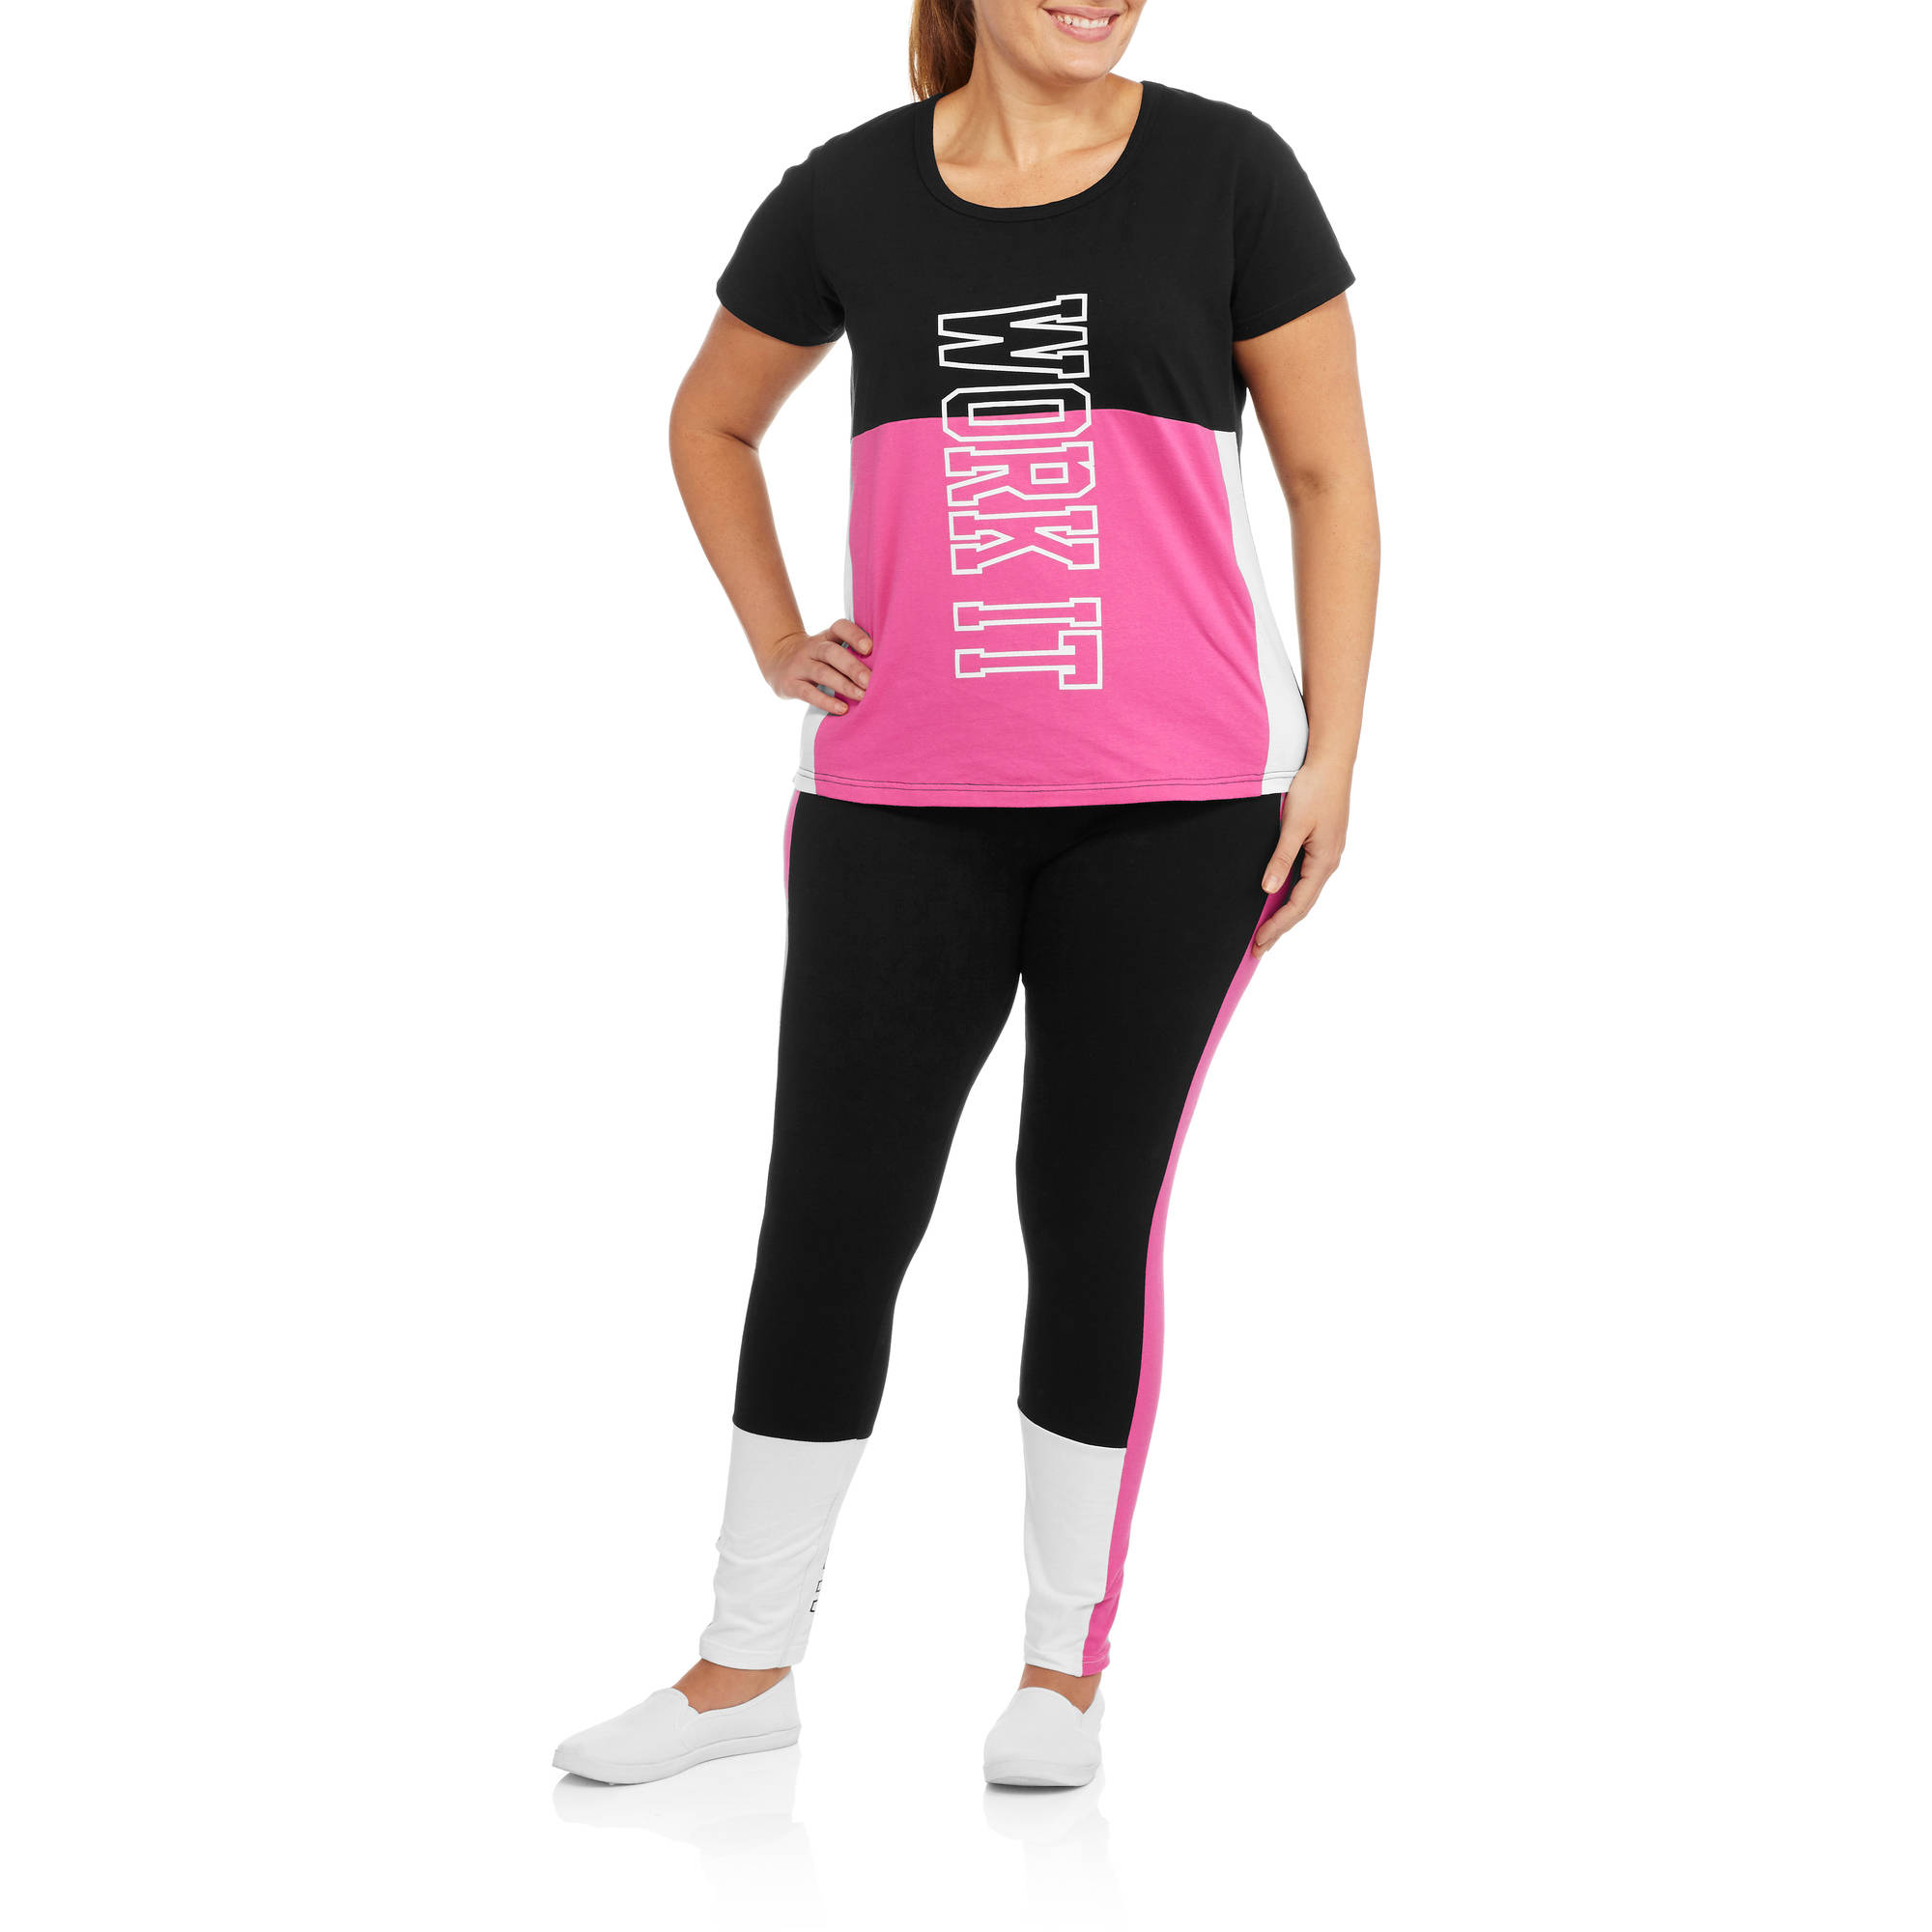 "Women's Plus Fitspiration ""Work It"" Active T-Shirt and Colorblock Leggings Set"